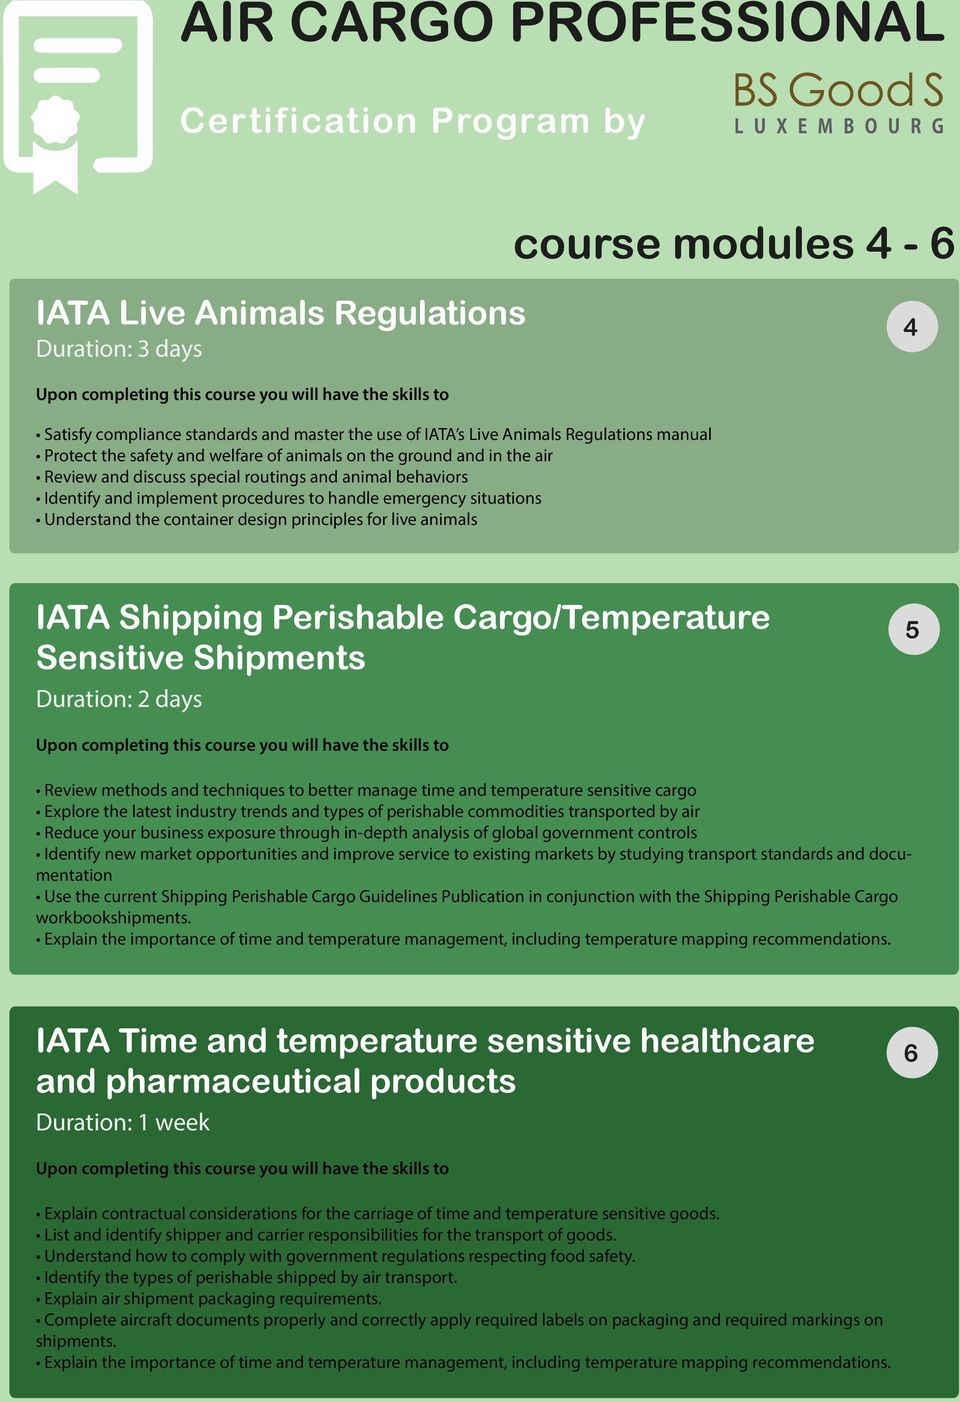 Understand the container design principles for live animals IATA Shipping Perishable Cargo/Temperature Sensitive Shipments Duration: 2 days 5 Review methods and techniques to better manage time and